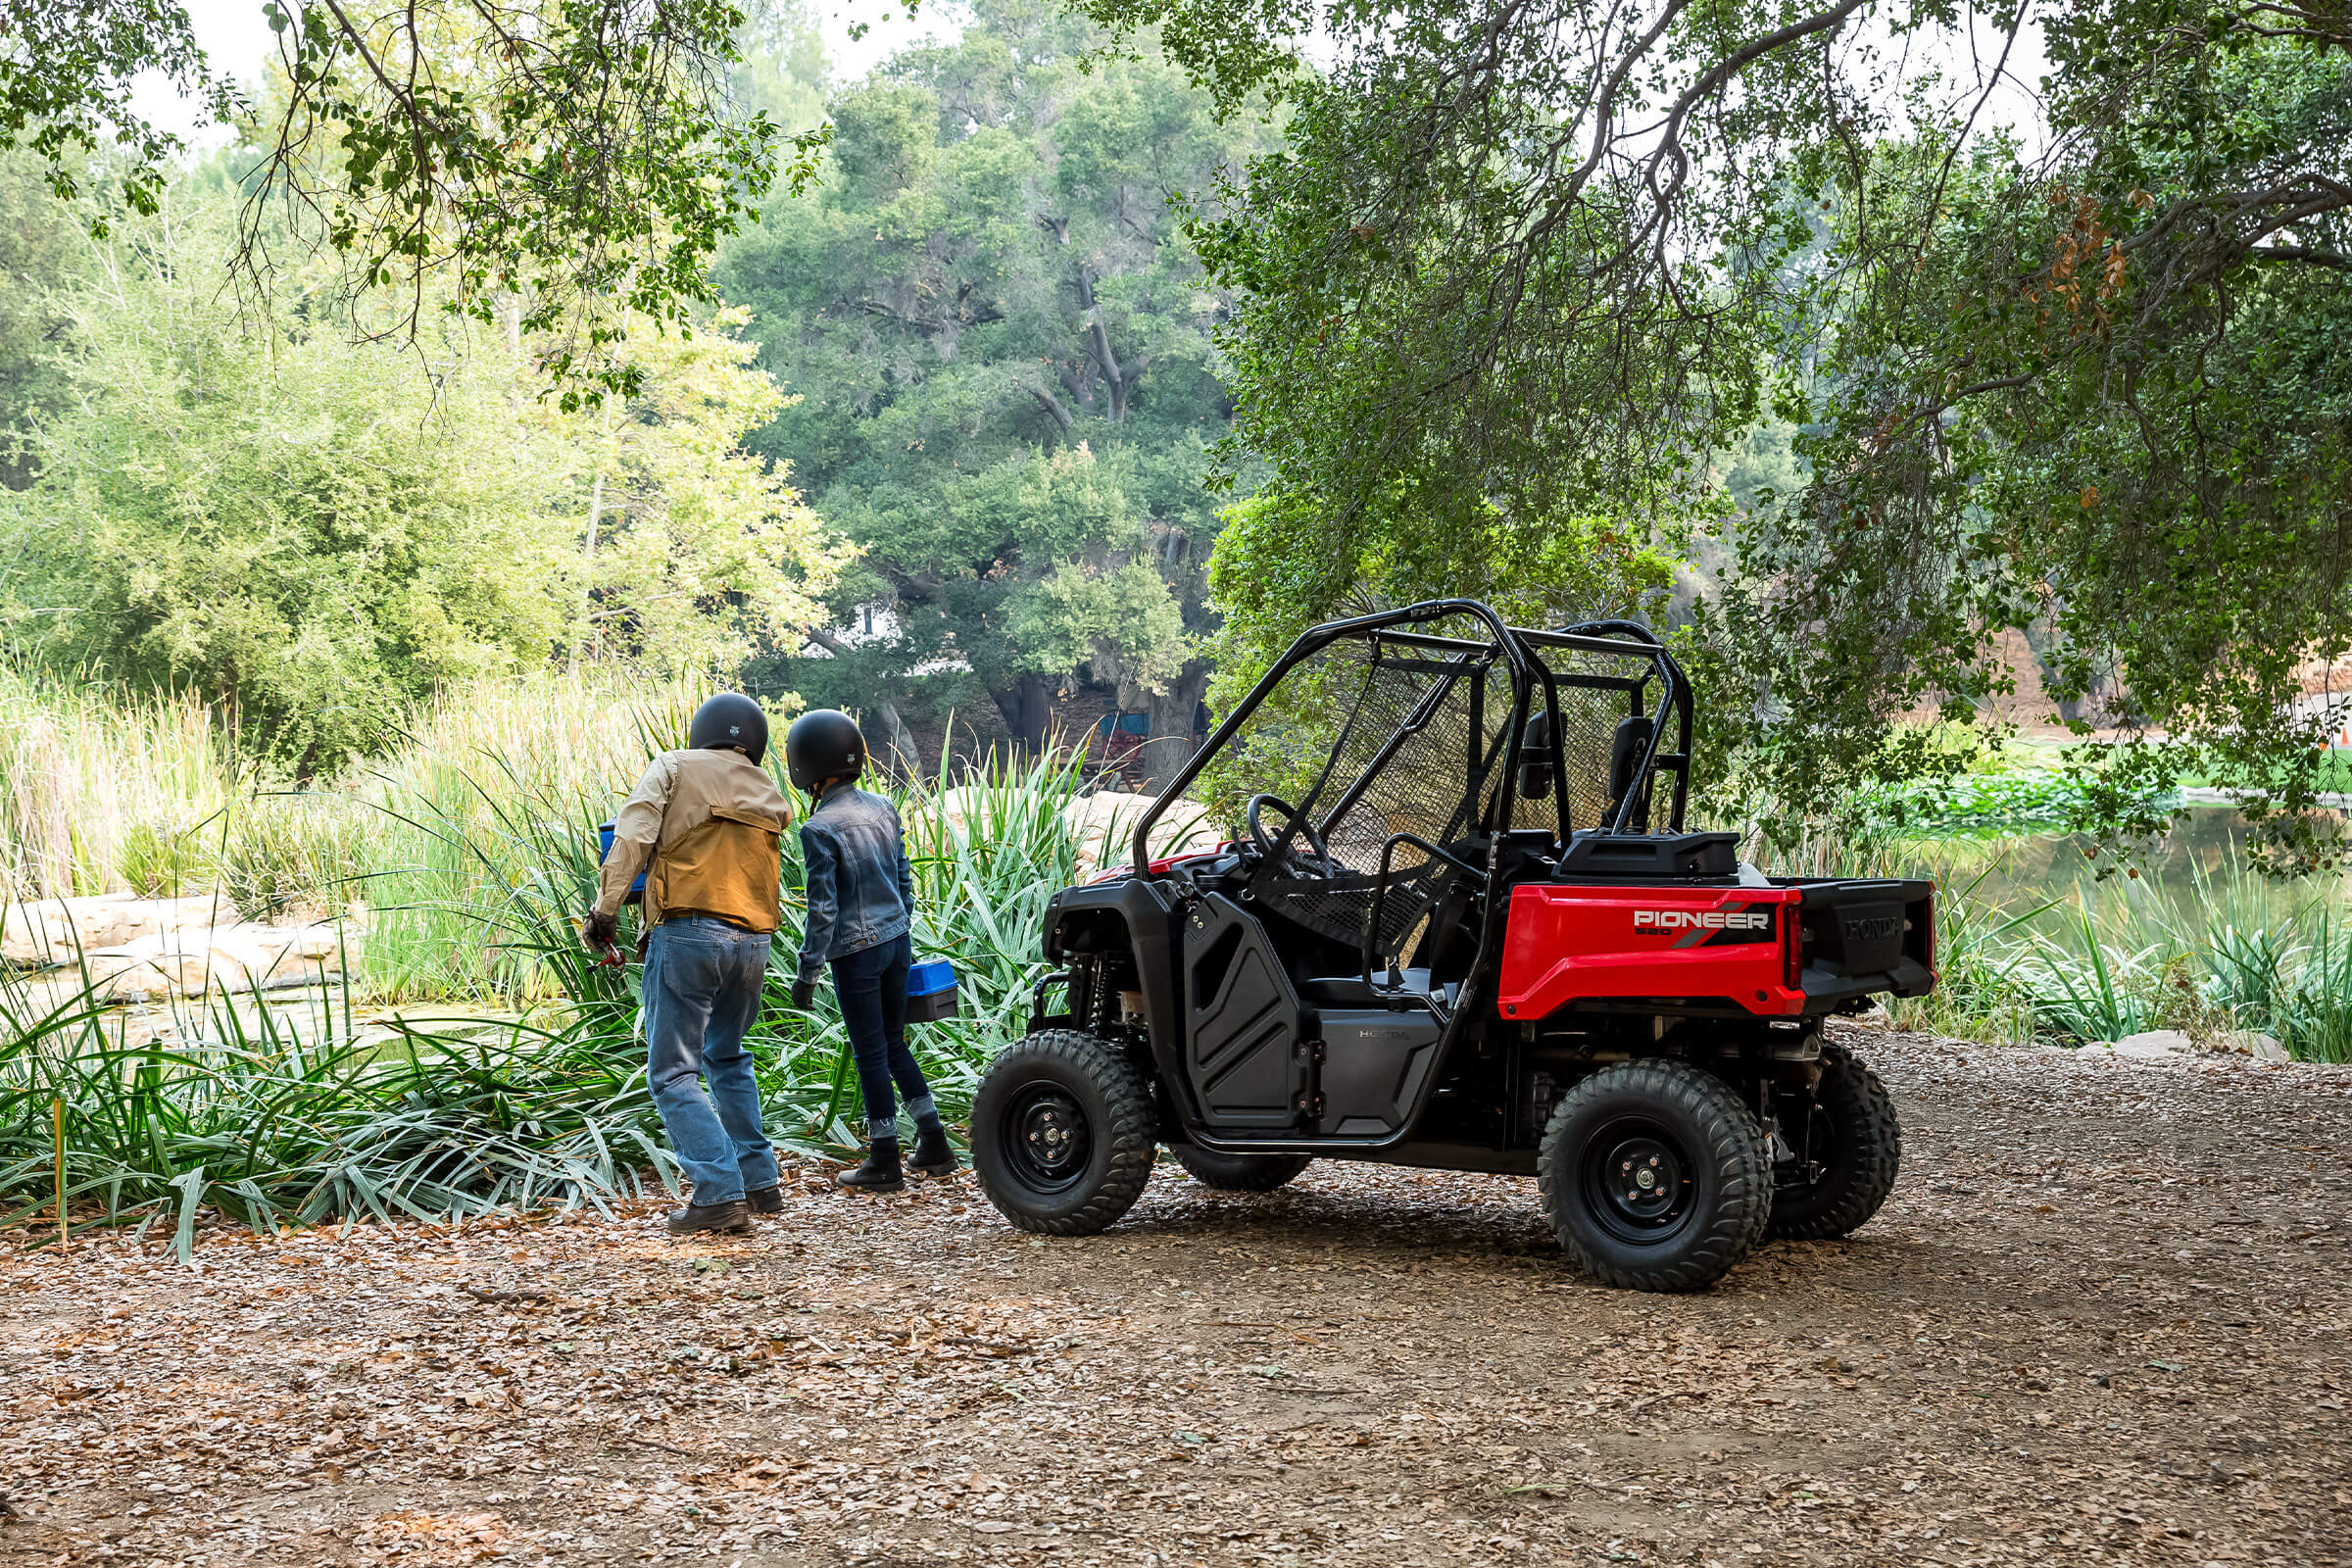 2021 Honda Pioneer 520 in Amarillo, Texas - Photo 2